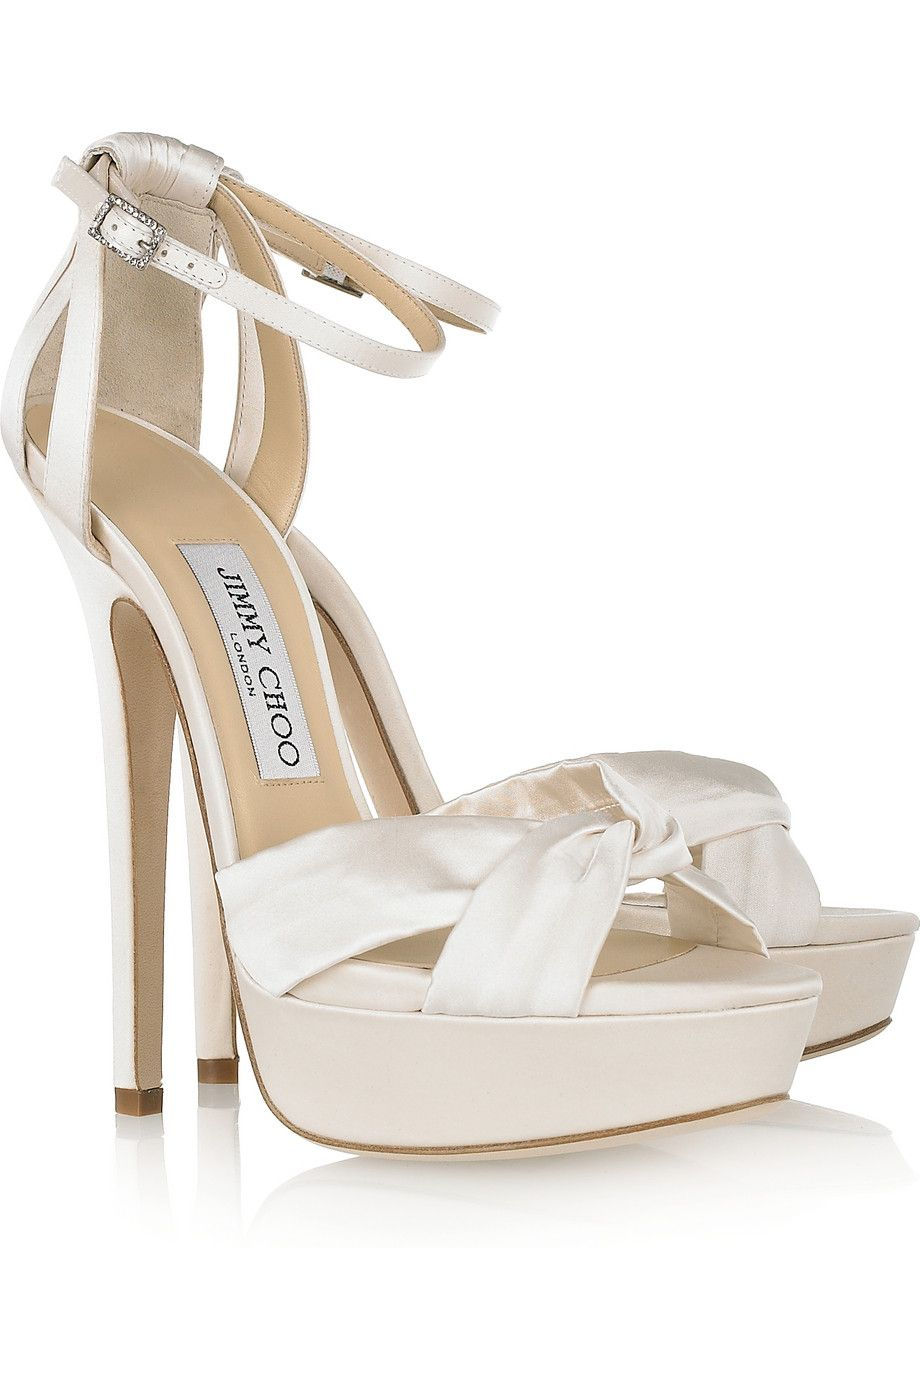 c8f2441ec56 Jimmy Choo s perfect bridal sandals...yours for just  300